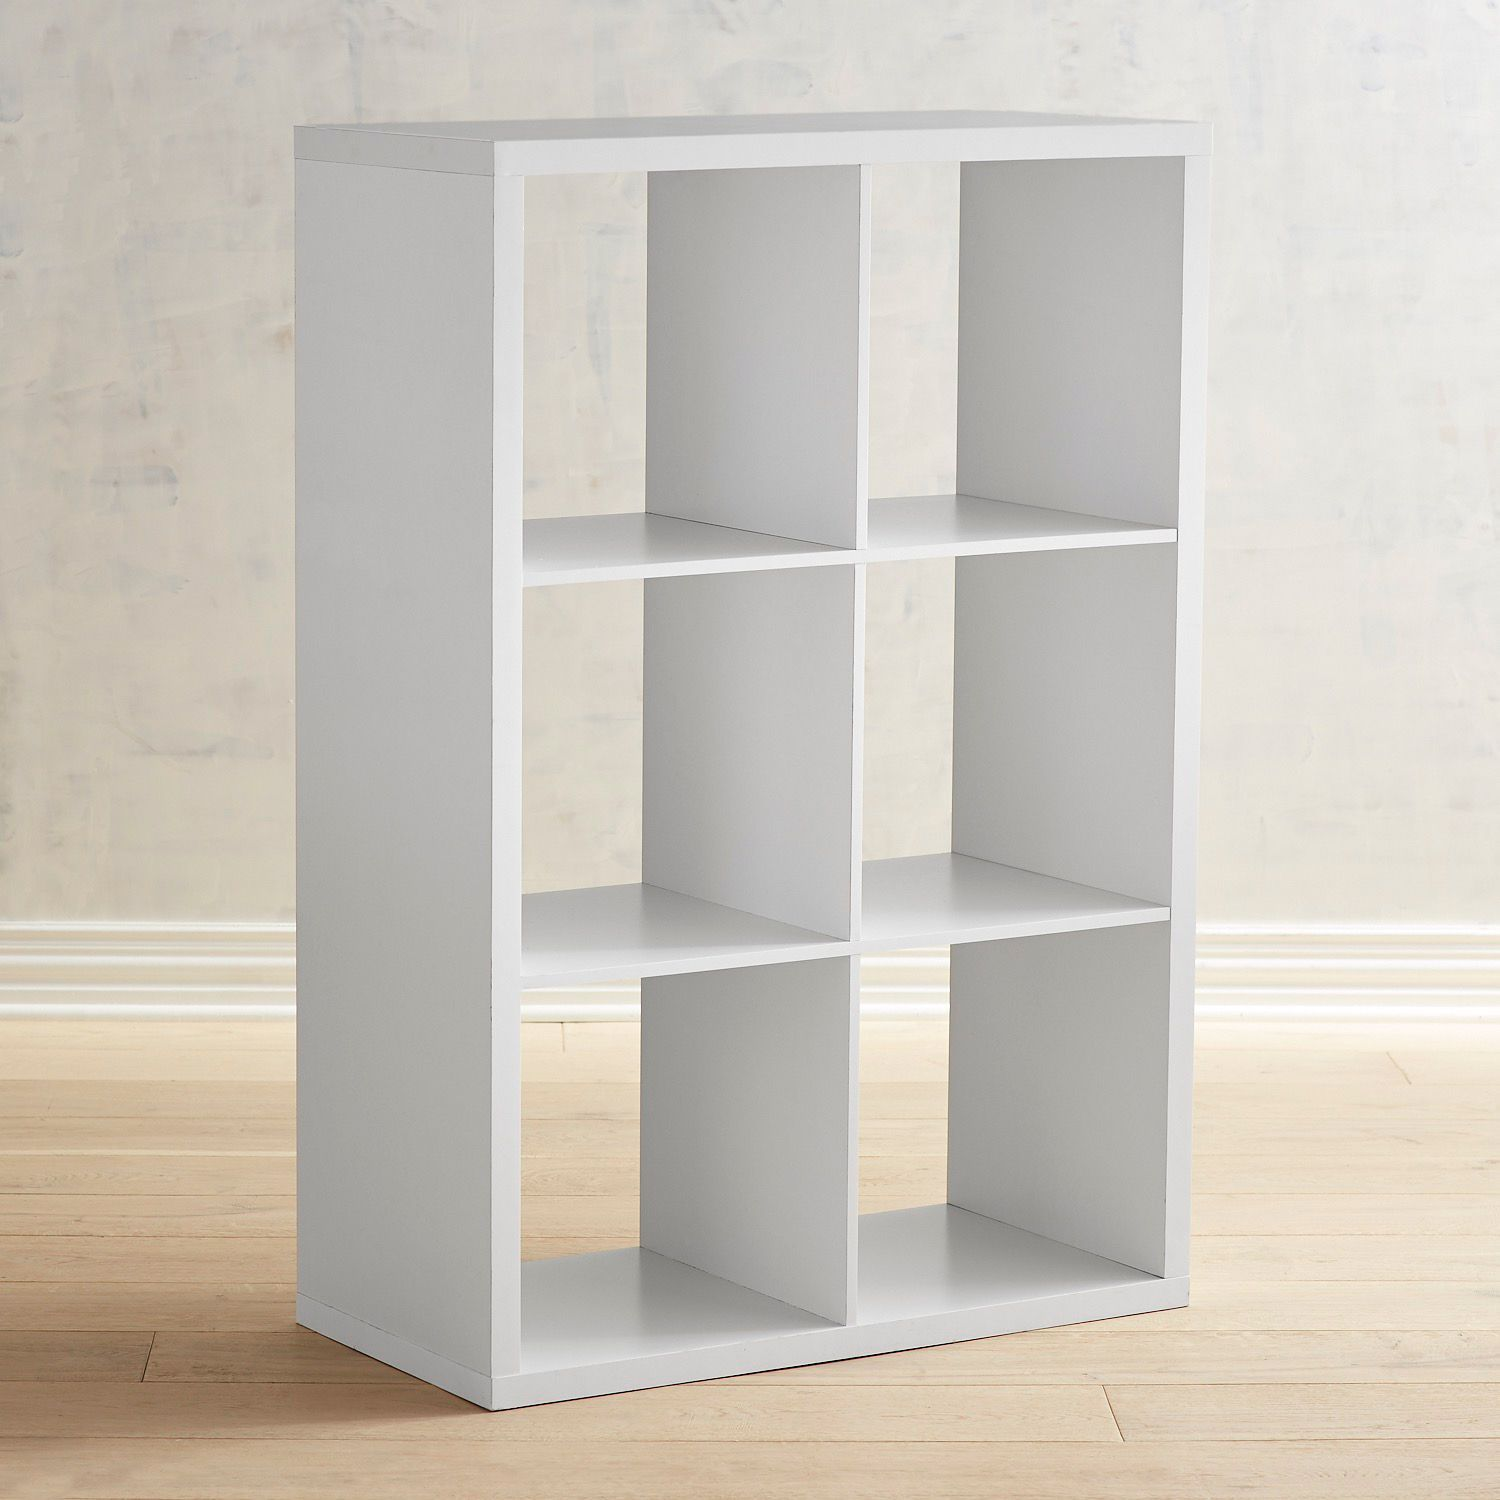 White 6 Cube Storage Unit Cube Storage Small Apartment Storage